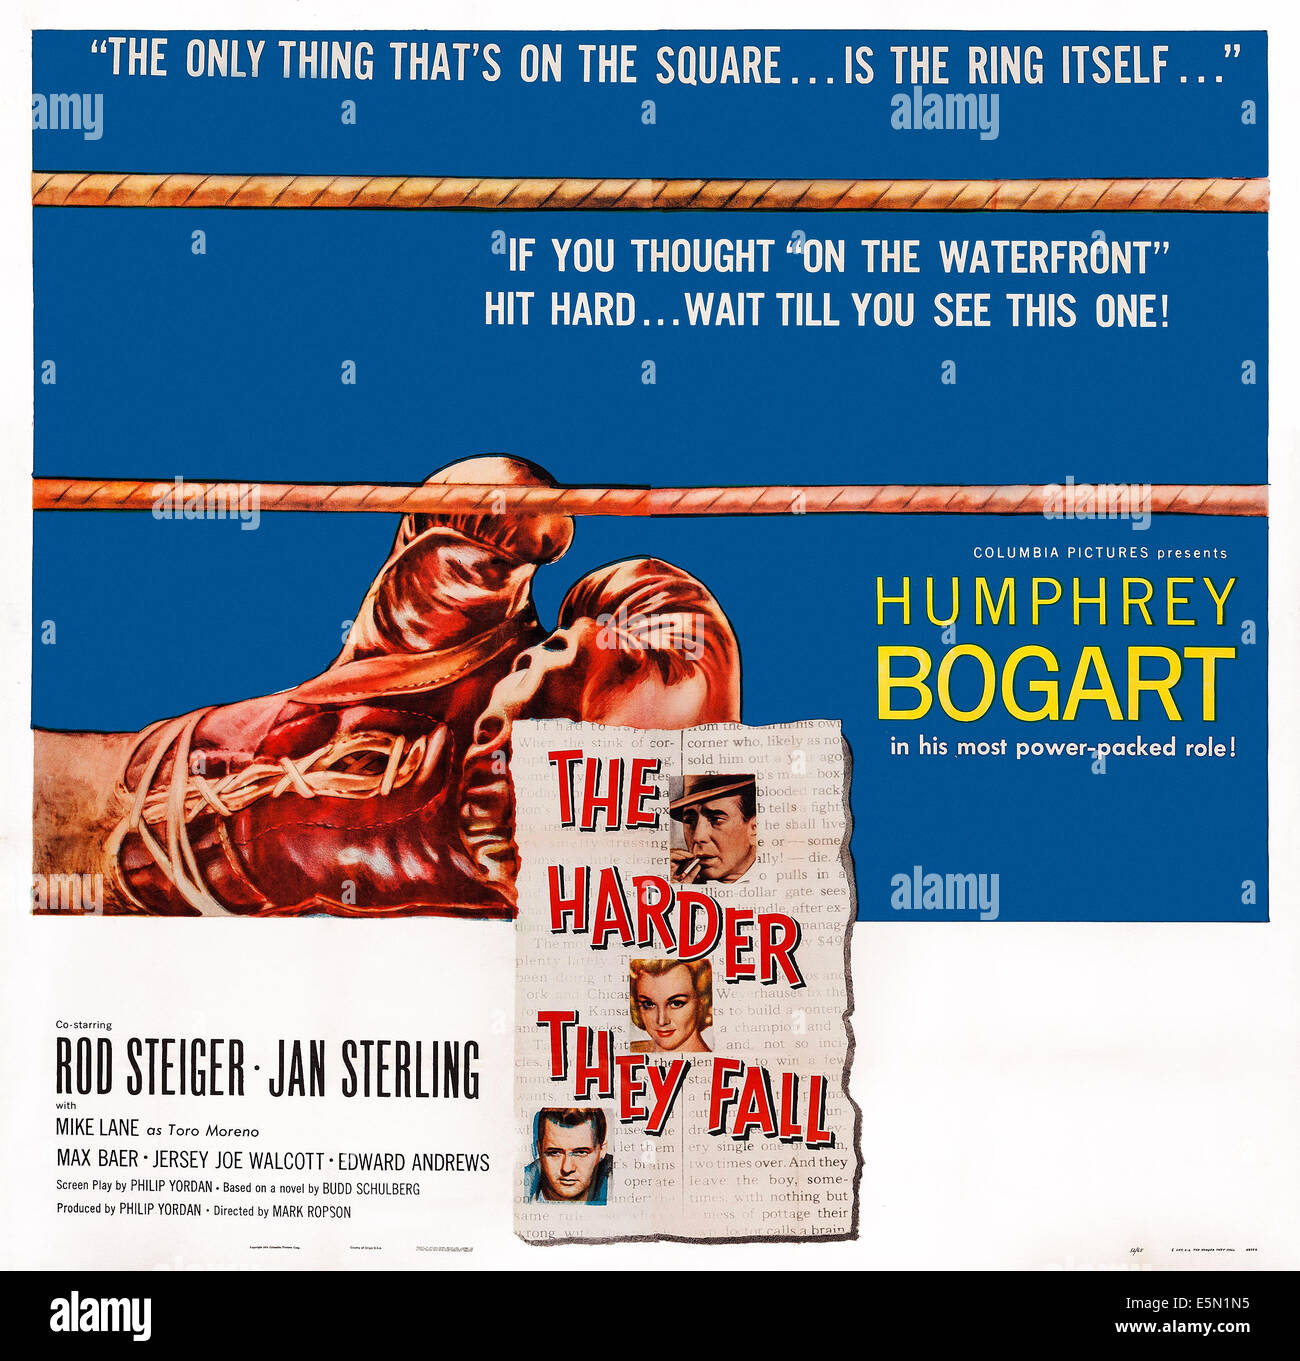 THE HARDER THEY FALL, US poster art, from top: Humphrey Bogart, Jan Sterling, Rod Steiger, 1956. - Stock Image